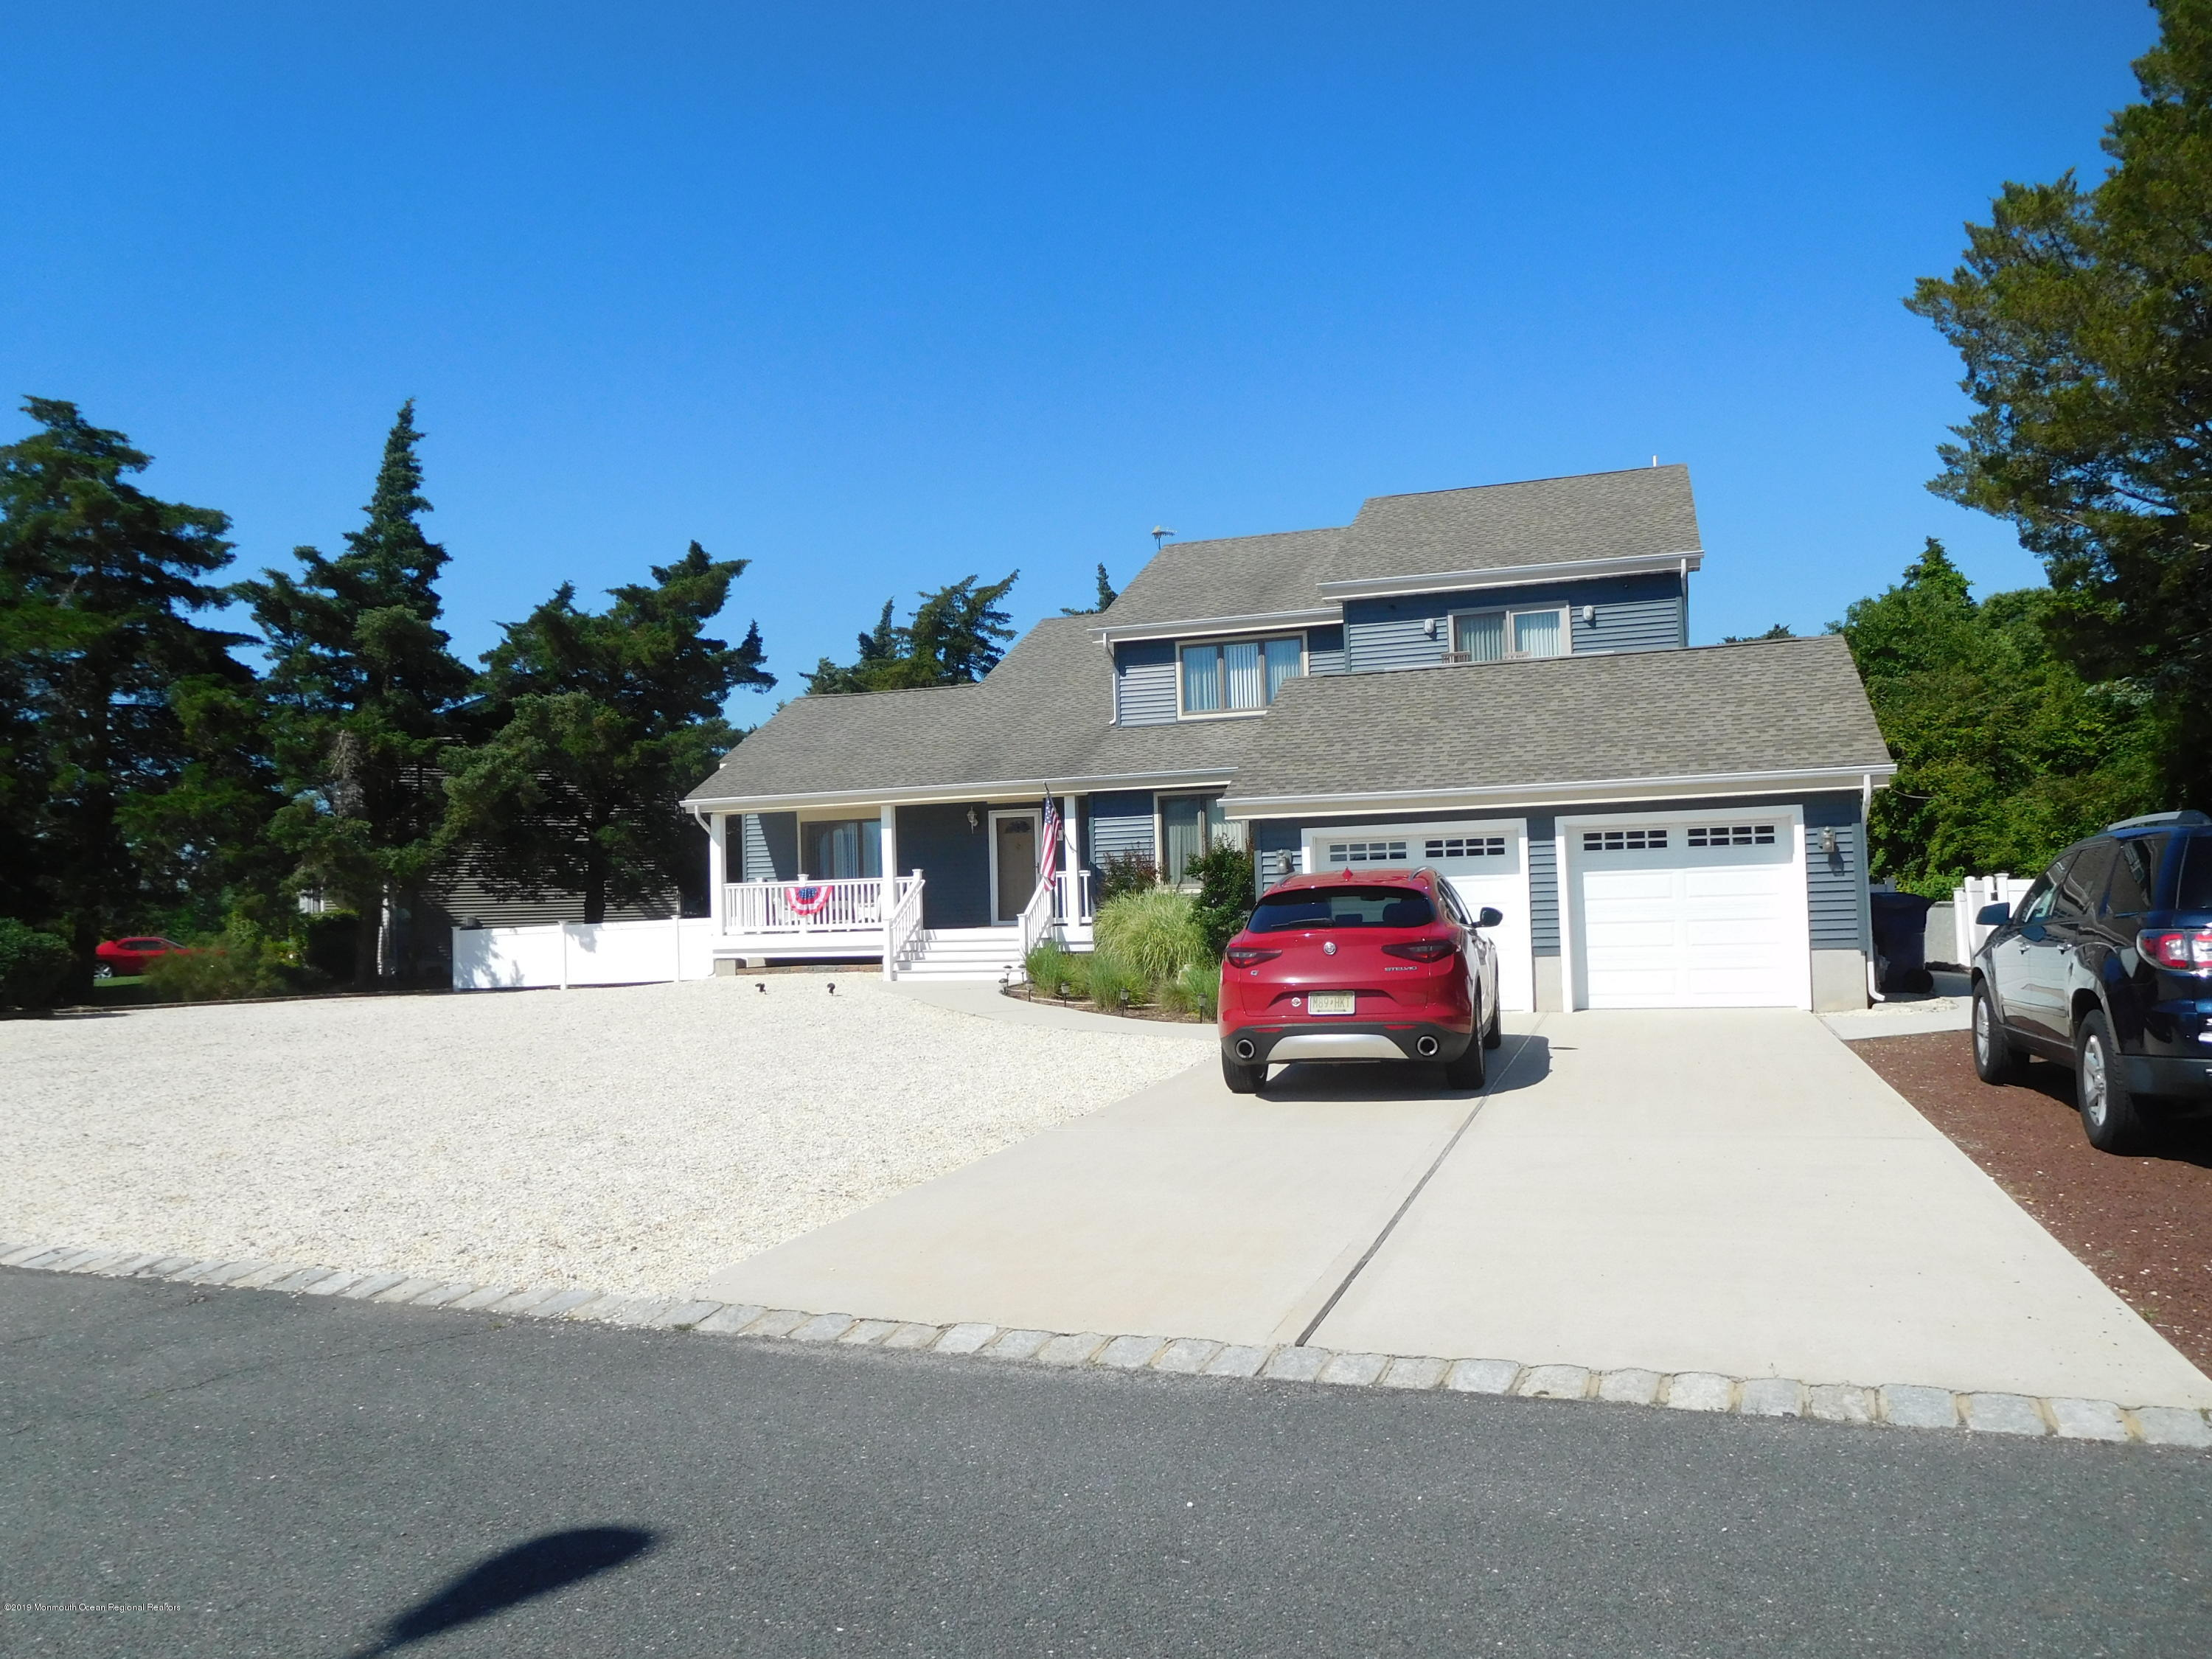 24 OVERLOOK DRIVE, LITTLE EGG HARBOR, NJ 08087